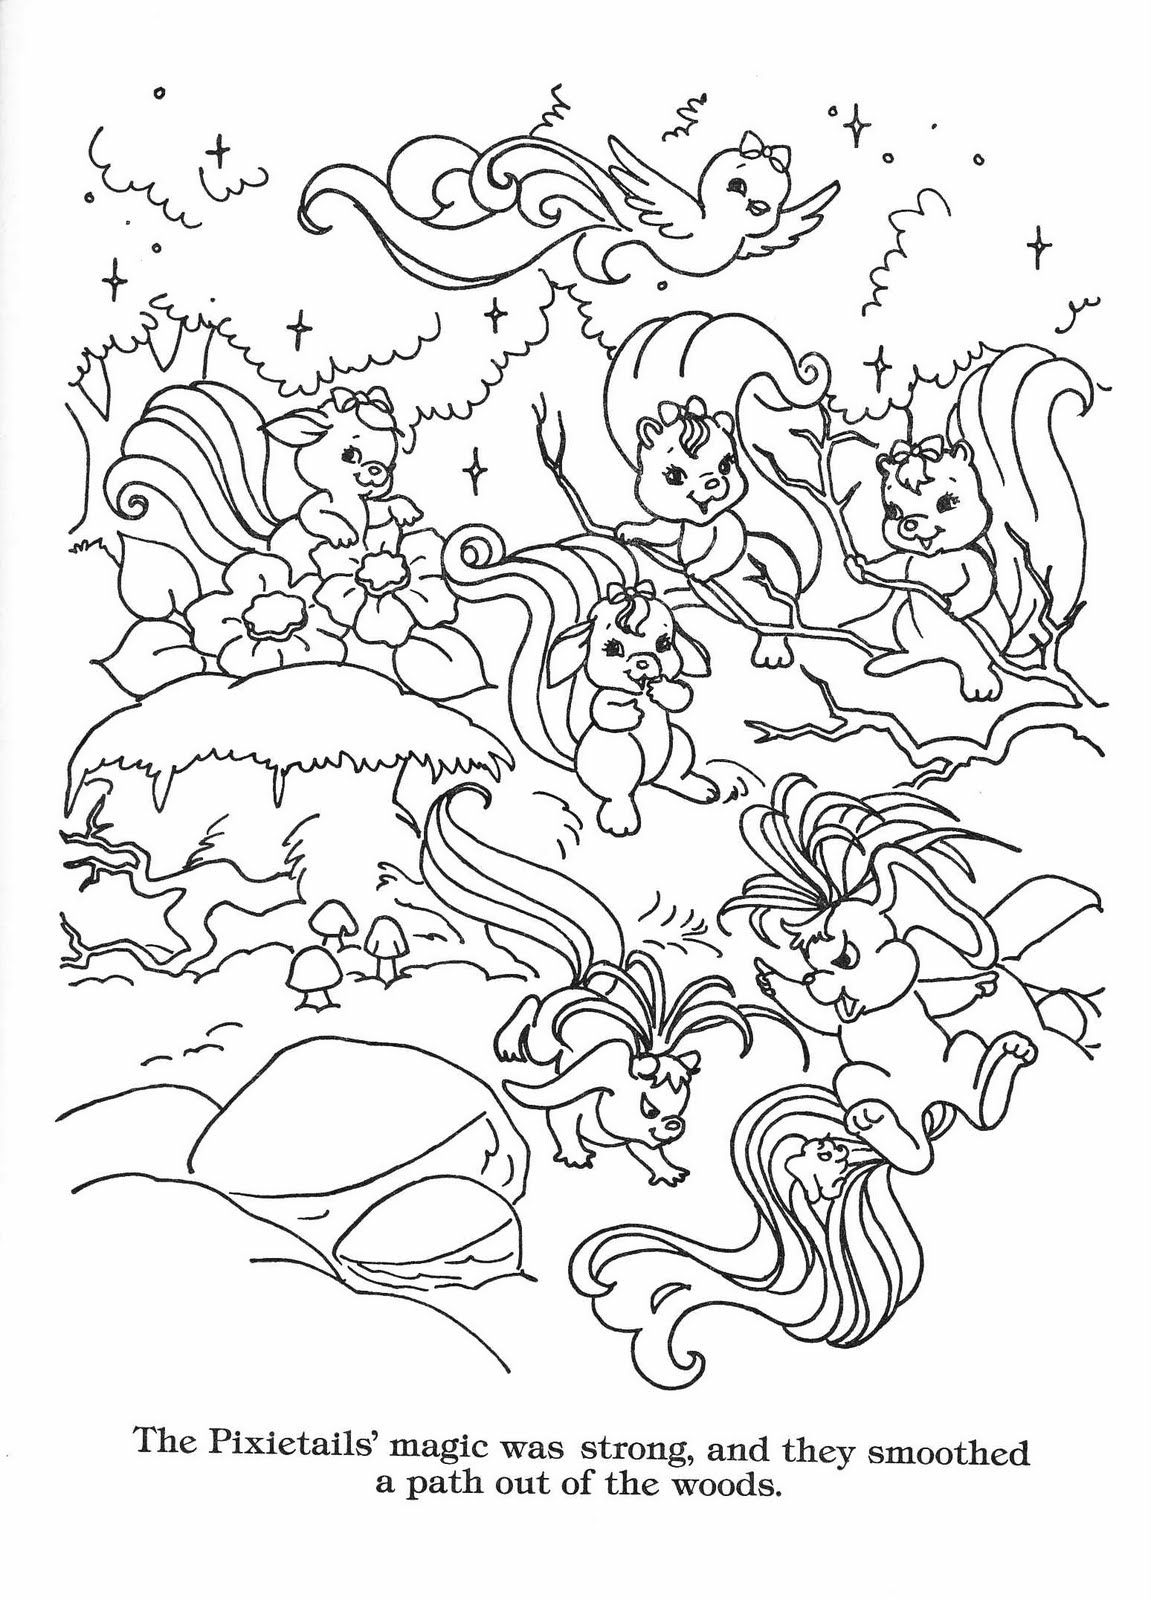 Http 2 Bp Blogspot Com Dxwvcrlywuw Tqh 9e22wwi Aaaaaaaaajy Qceurso3pwq S1600 Lll 2bpage 2b51 Jpg Lady Lovely Locks Cartoon Coloring Pages Coloring Pages